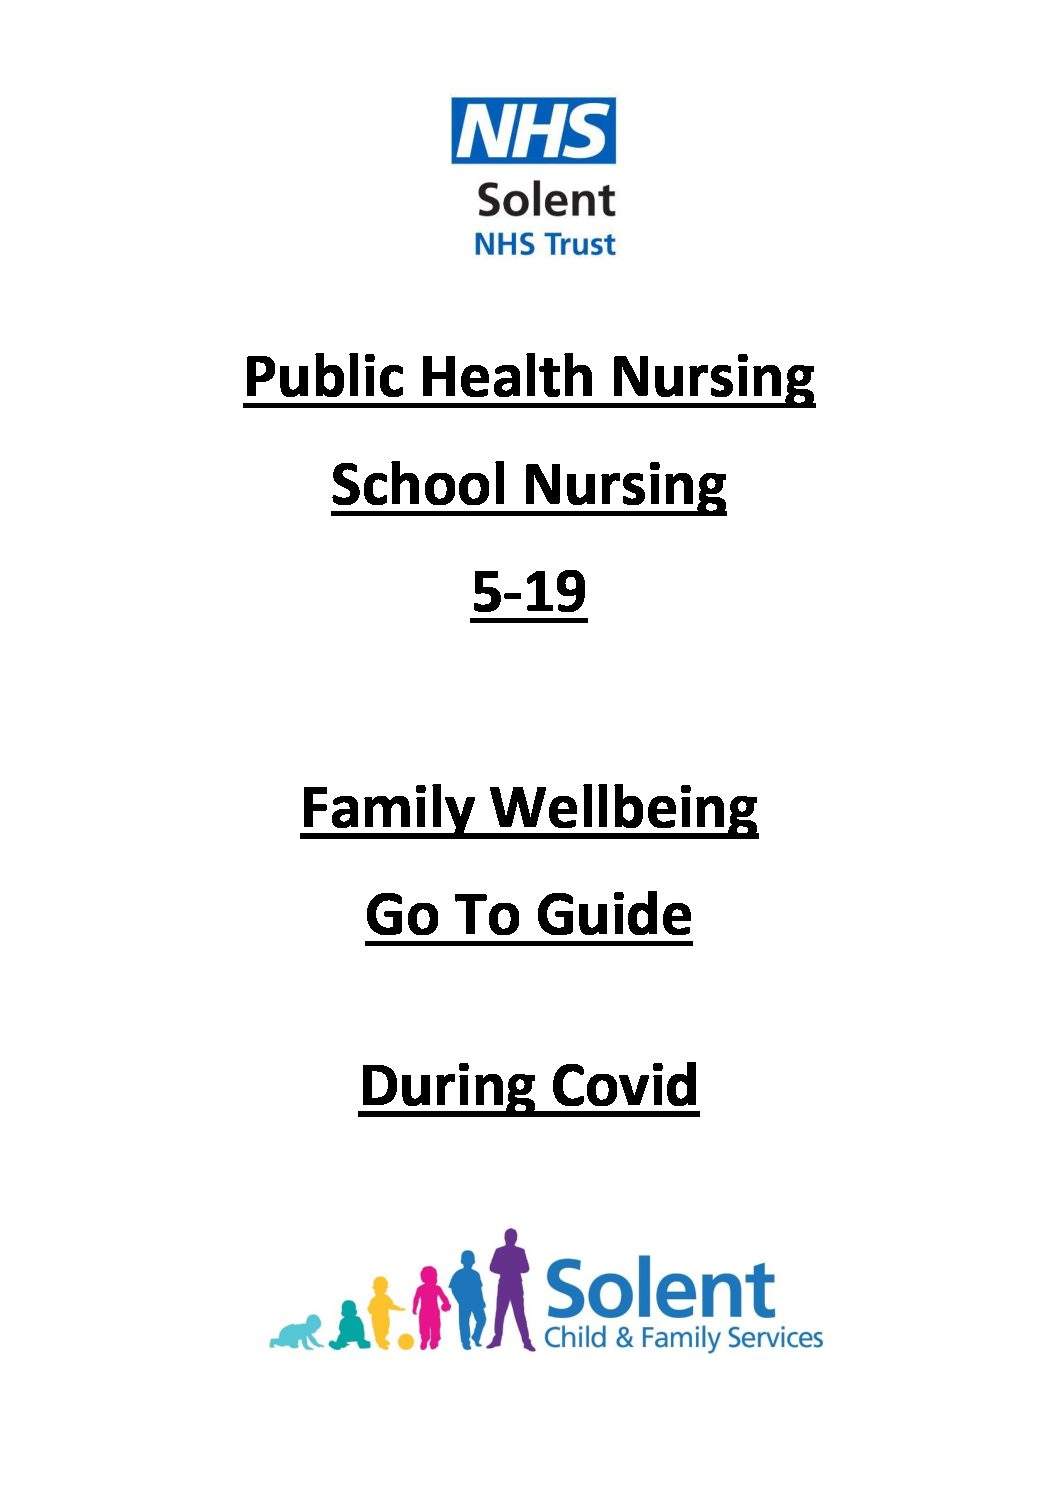 Solent NHS Trust – Family Wellbeing Go to Guide